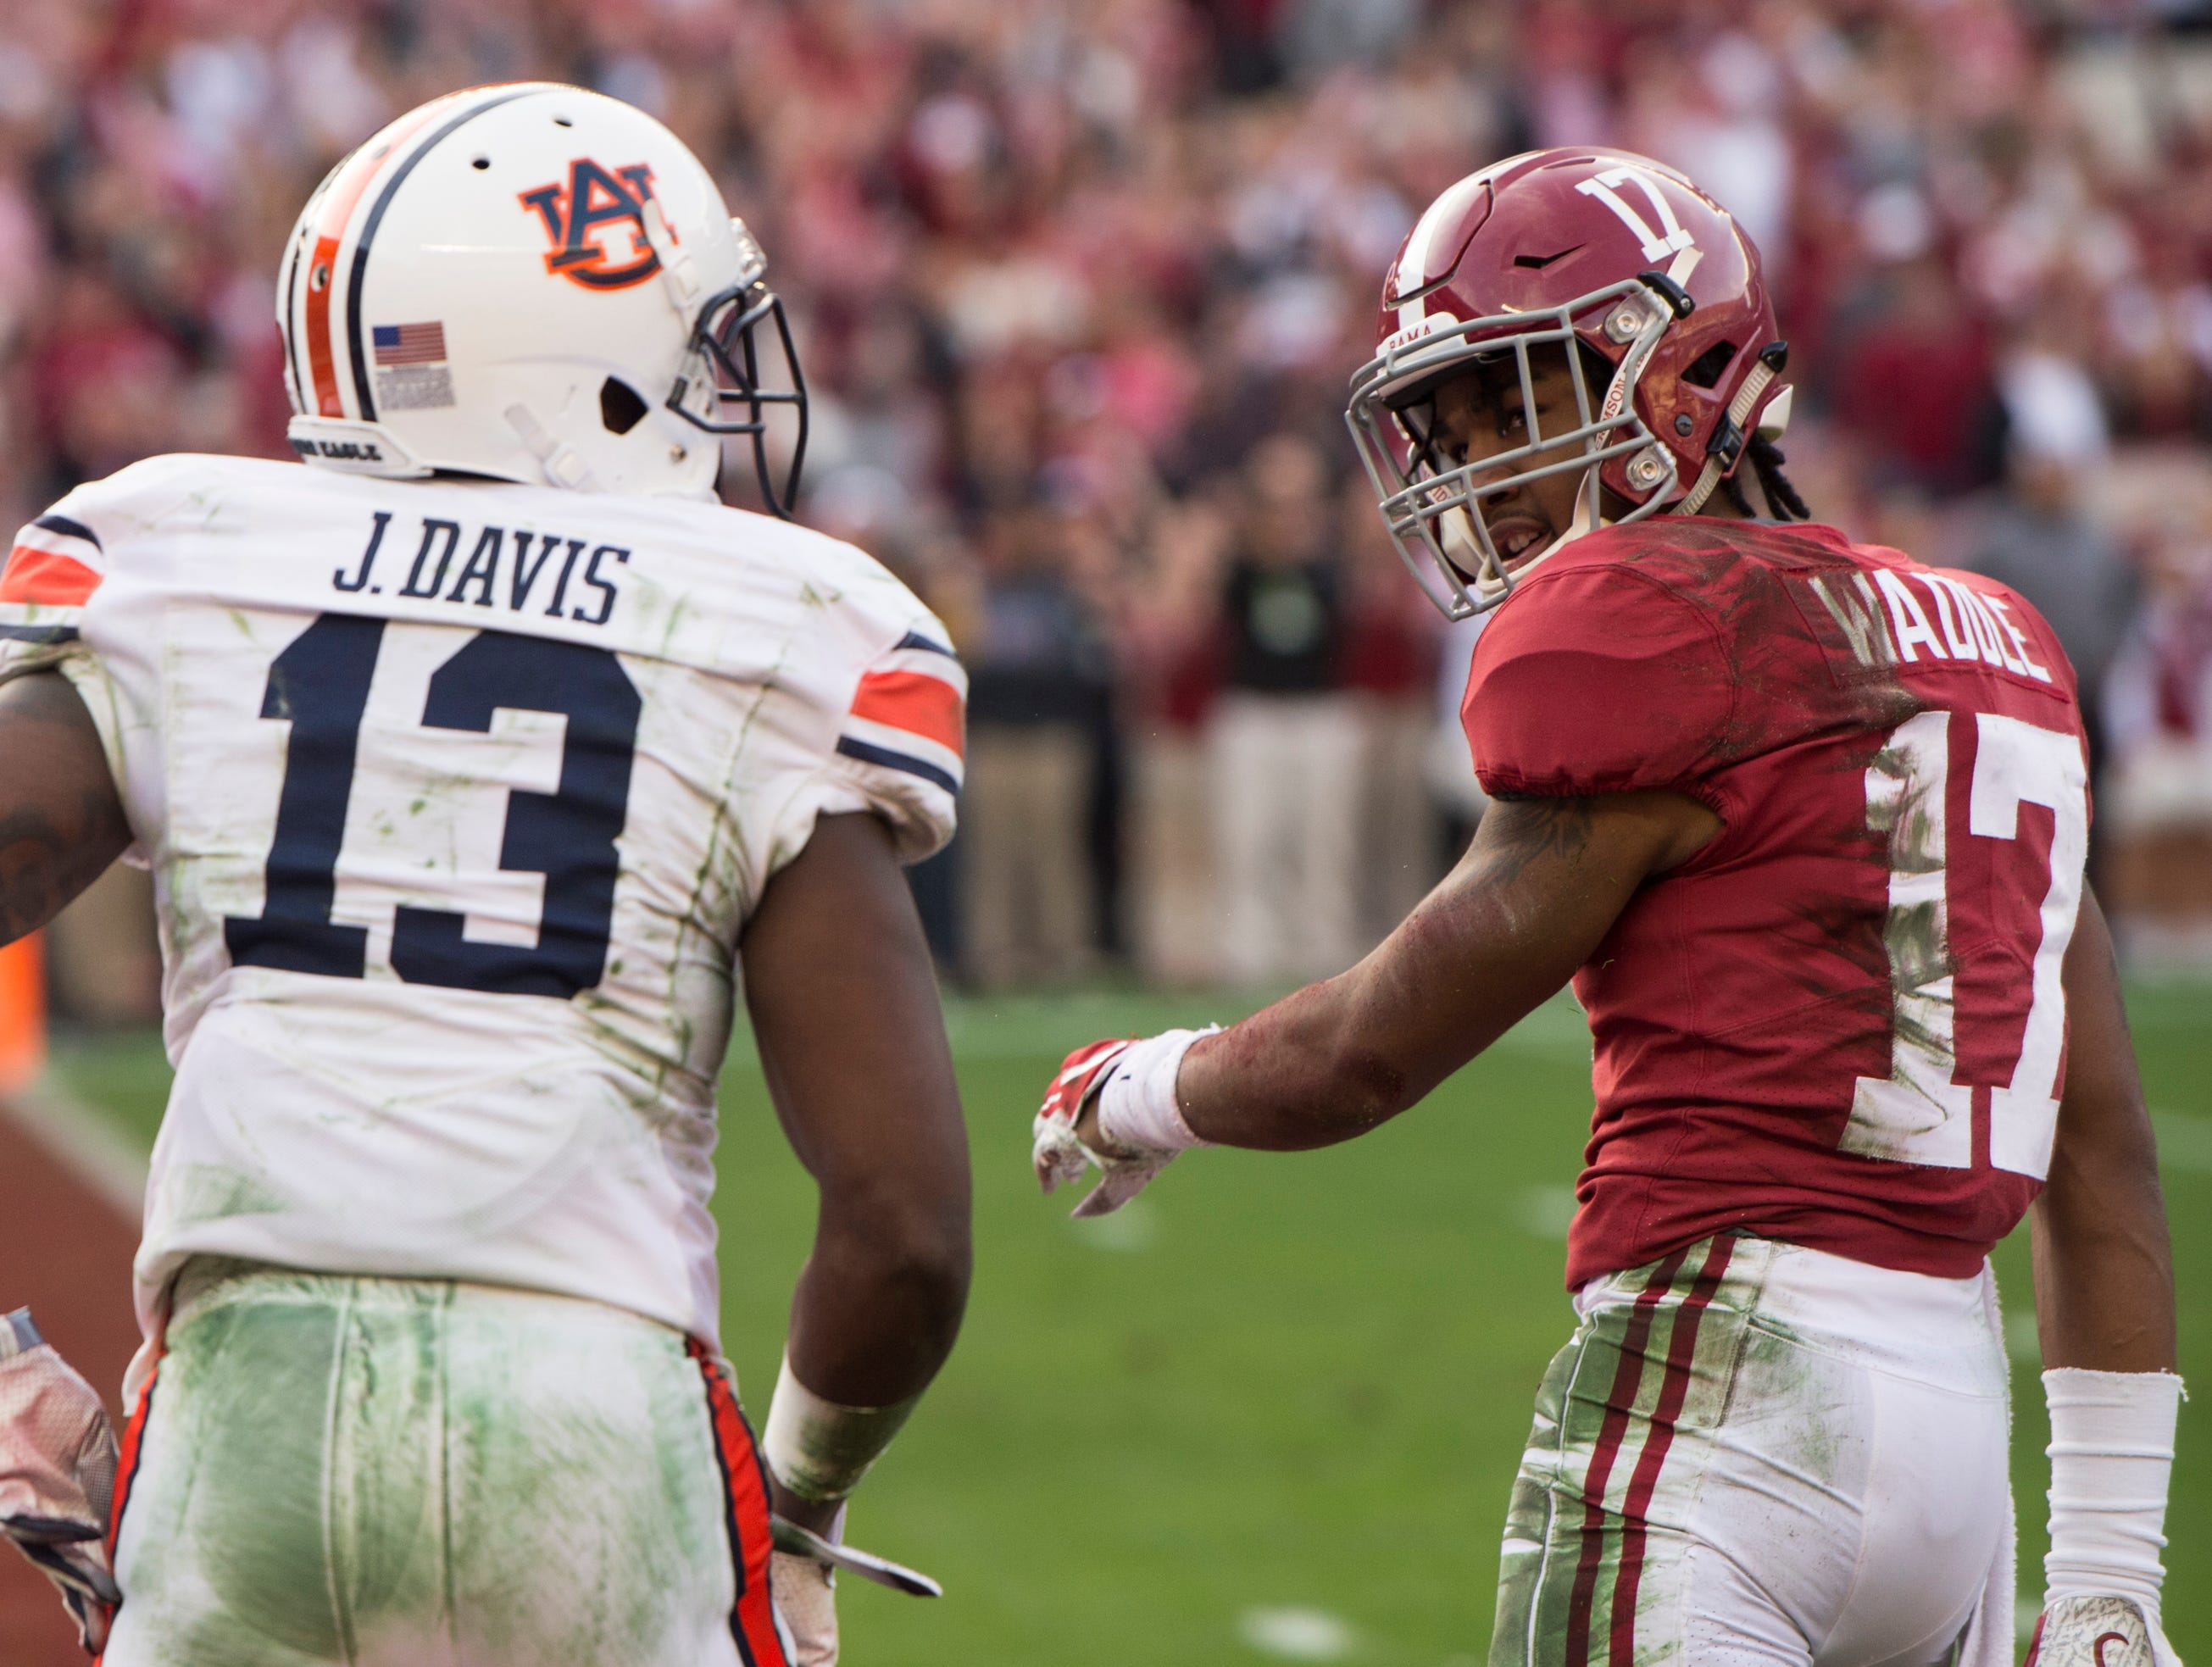 Alabama wide receiver Jaylen Waddle (17) looks back at Auburn defensive back Javaris Davis (13) after Davis was called for a pass interference on Waddle during the Iron Bowl at Bryant-Denny Stadium in Tuscaloosa, Ala., on Saturday, Nov. 24, 2018. Alabama leads Auburn 17-14 at halftime.